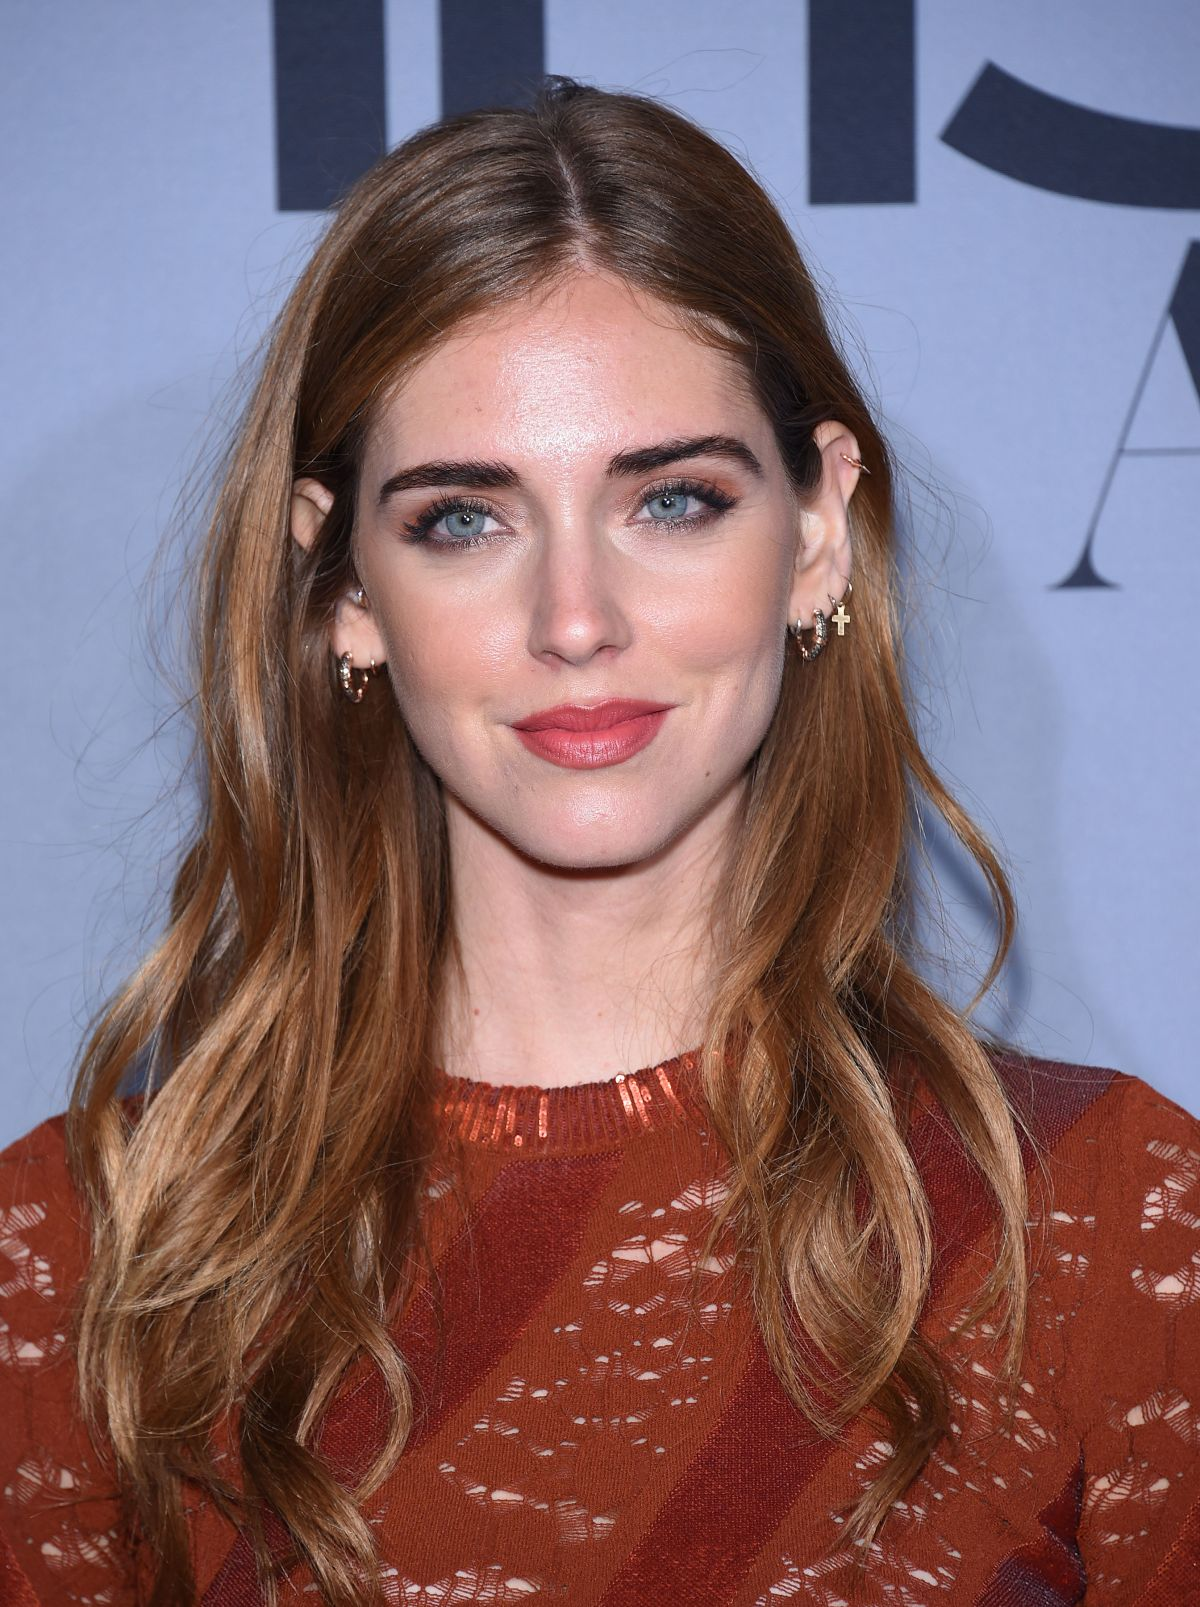 CHIARA FERRAGNI at InStyle Awards 2015 in Los Angeles 10/26/2015